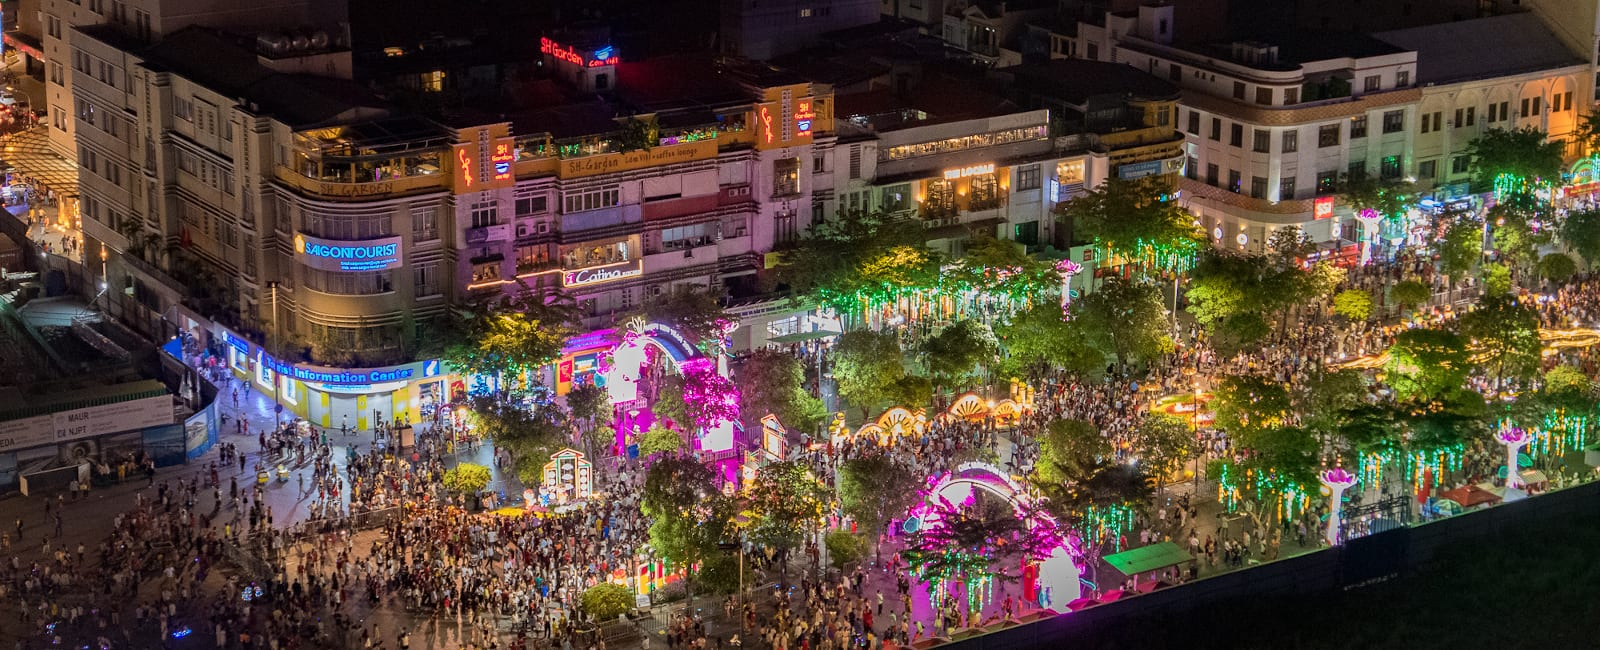 Ho Chi Minh City. Lunar New Year celebrations as seen from the roof top bar